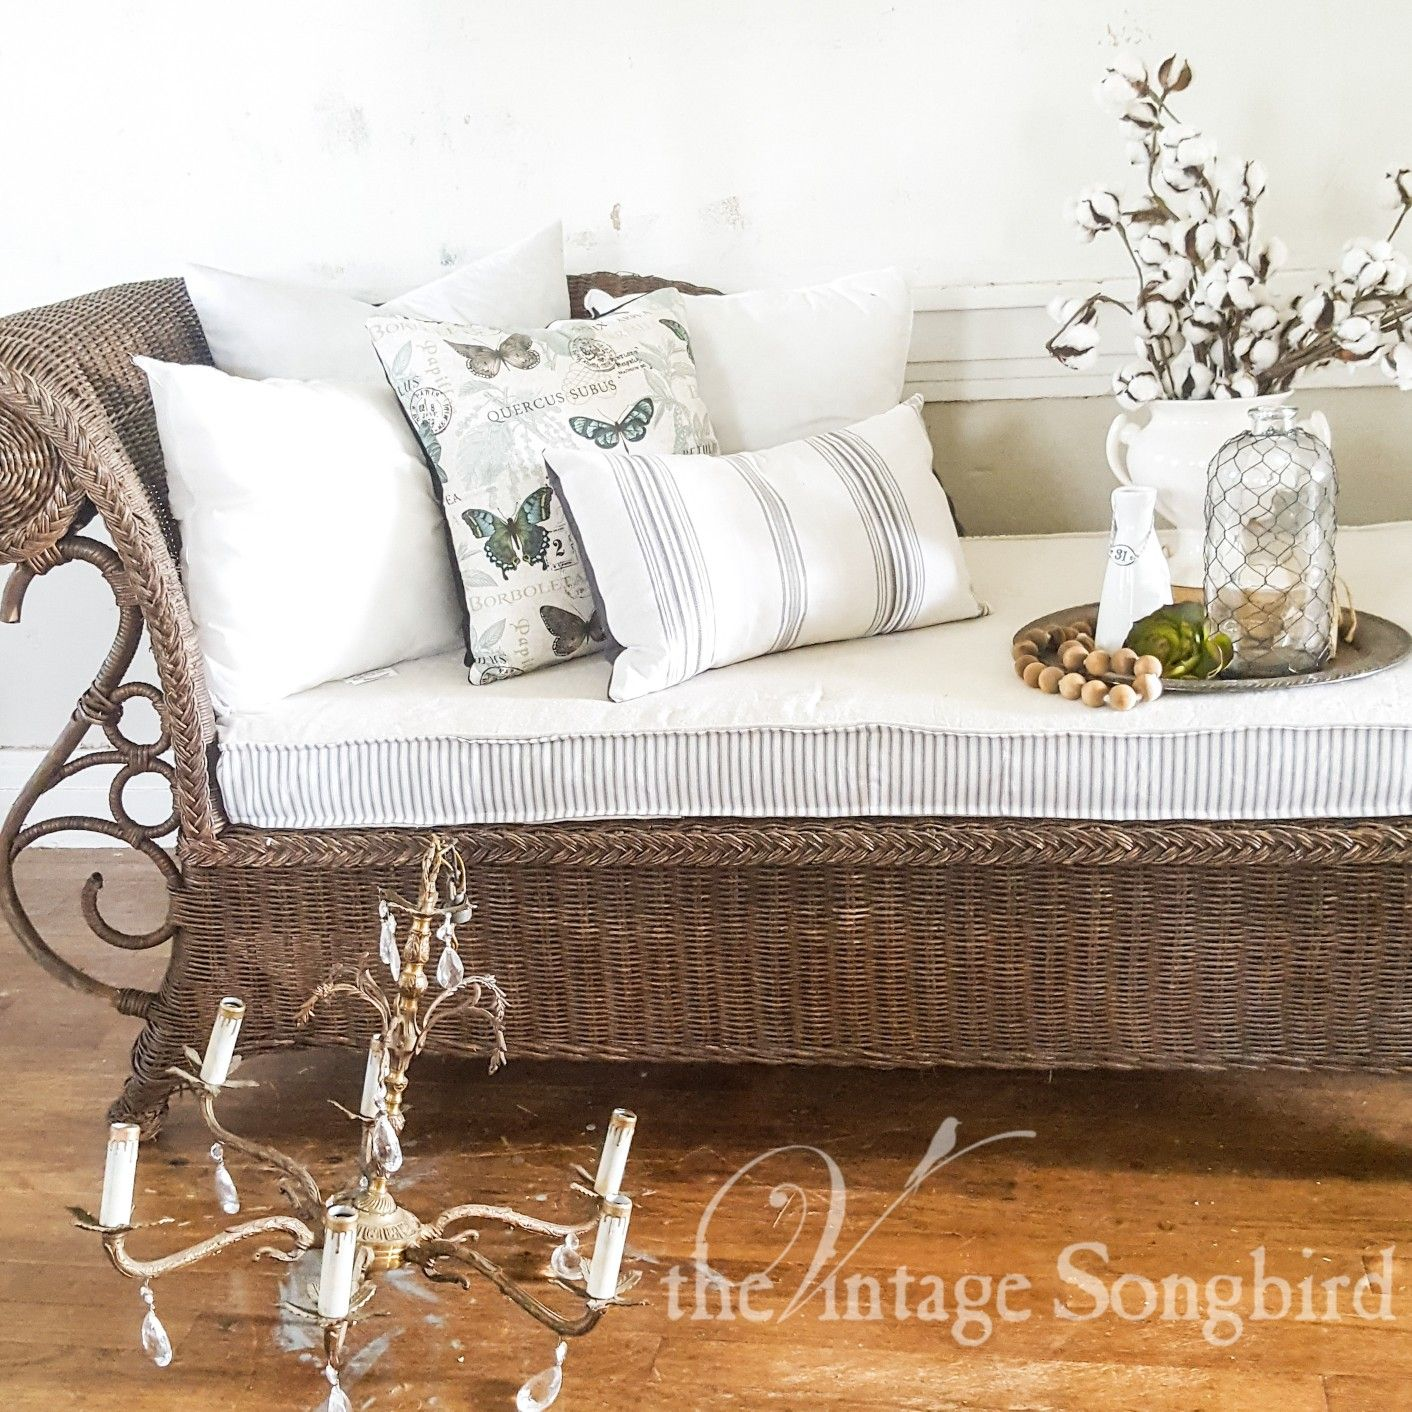 Vintage Chaise Lounge By The Vintage Songbird Cottage Style Homes Cottage Homes Chaise Lounge